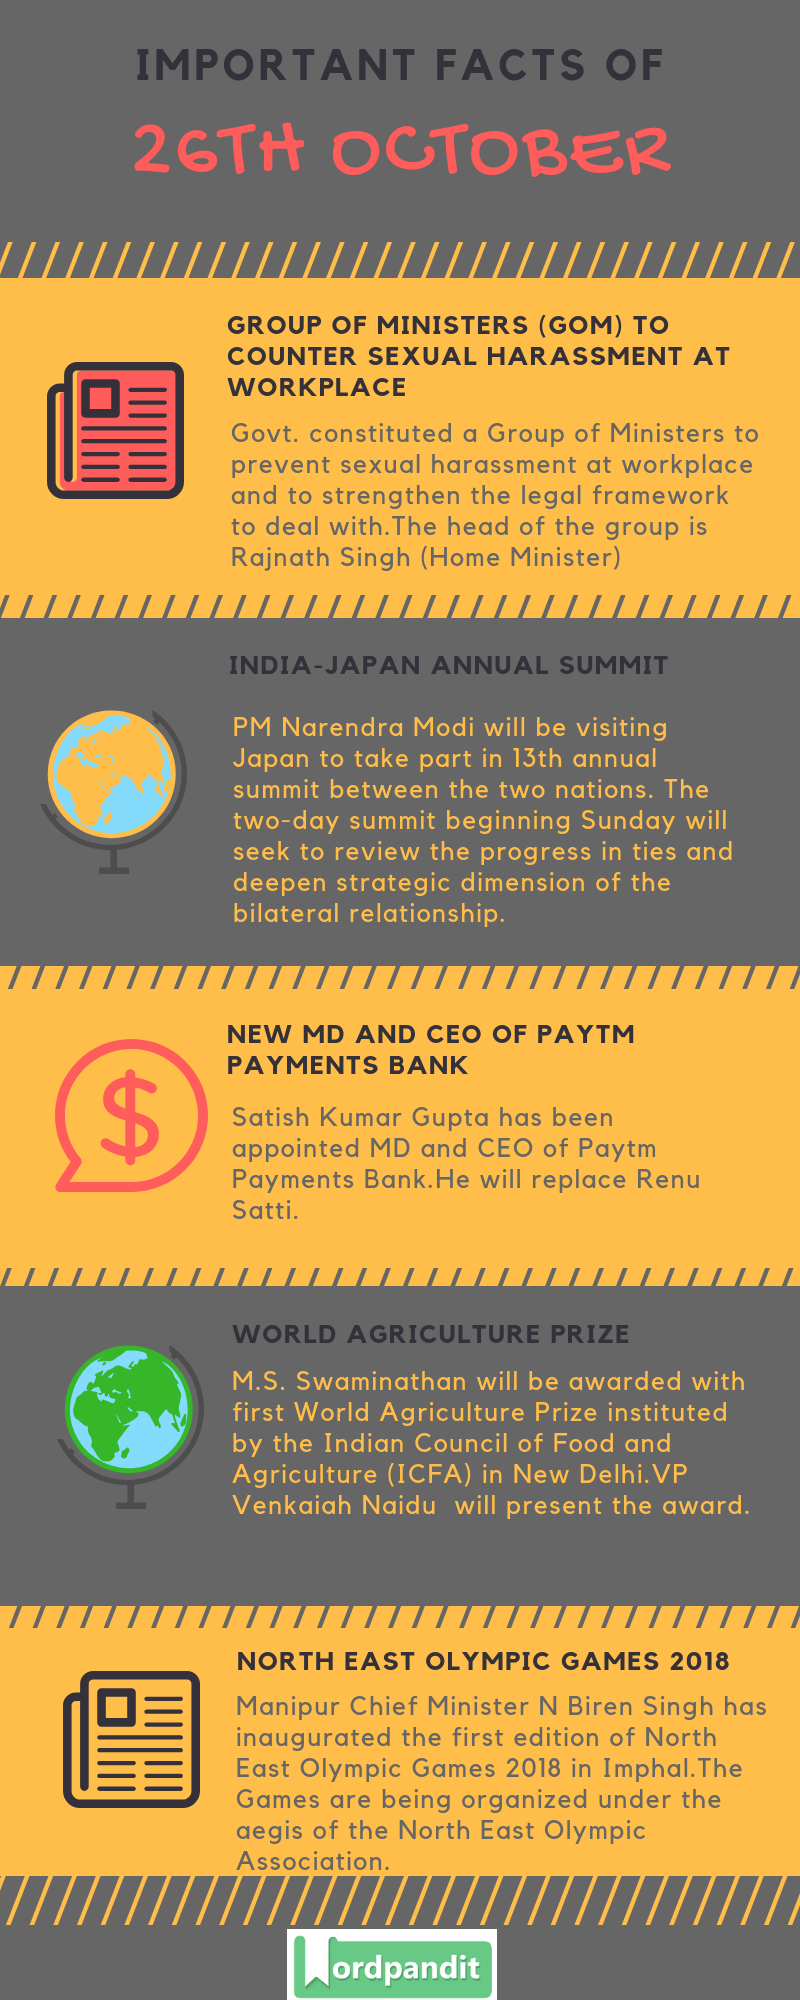 Daily Current Affairs 26 October 2018 Current Affairs Quiz 26 October 2018 Current Affairs Infographic